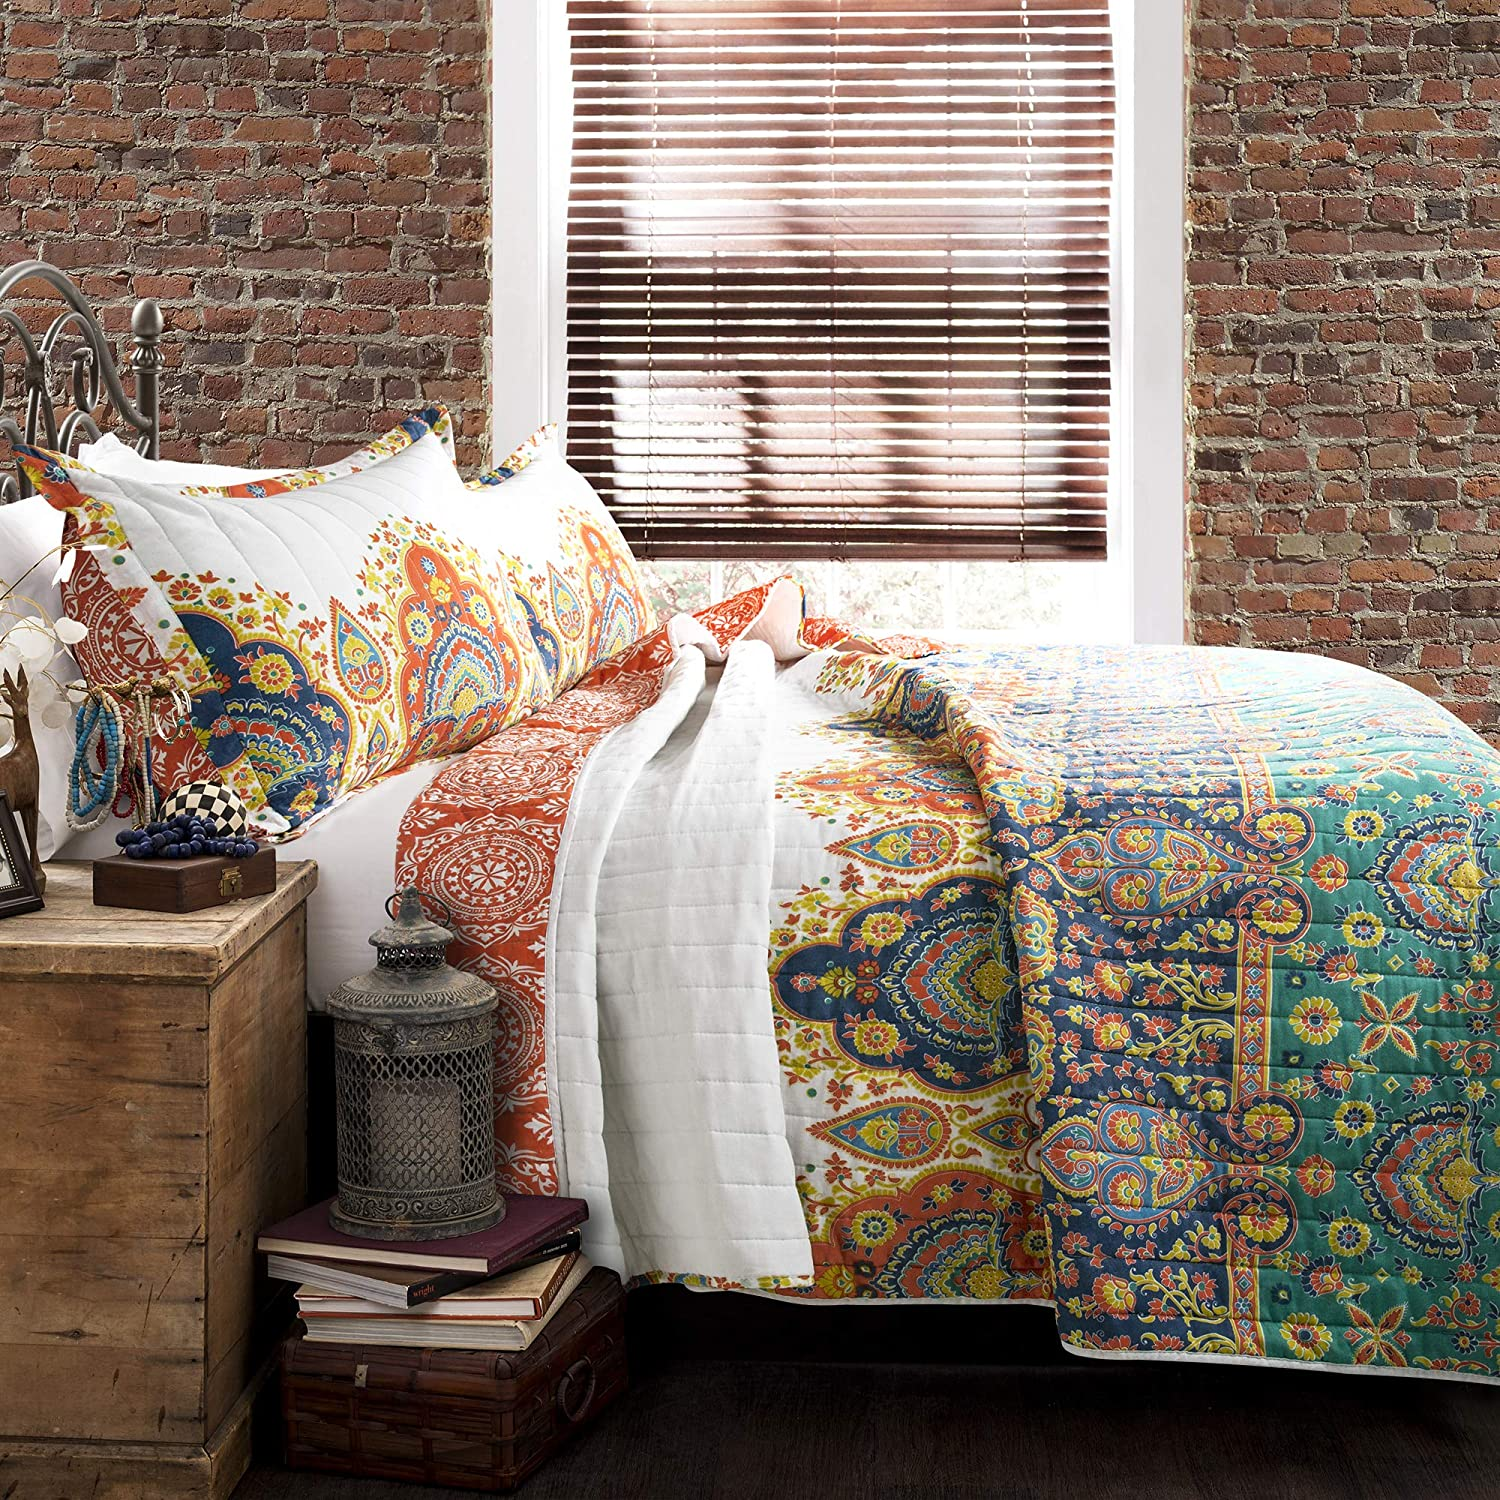 Lush Decor Bohemian Meadow Reversible Quilt 3 Piece Colorful Bedding Set-Full Queen-Turquoise and Orange, Orange & Turquoise